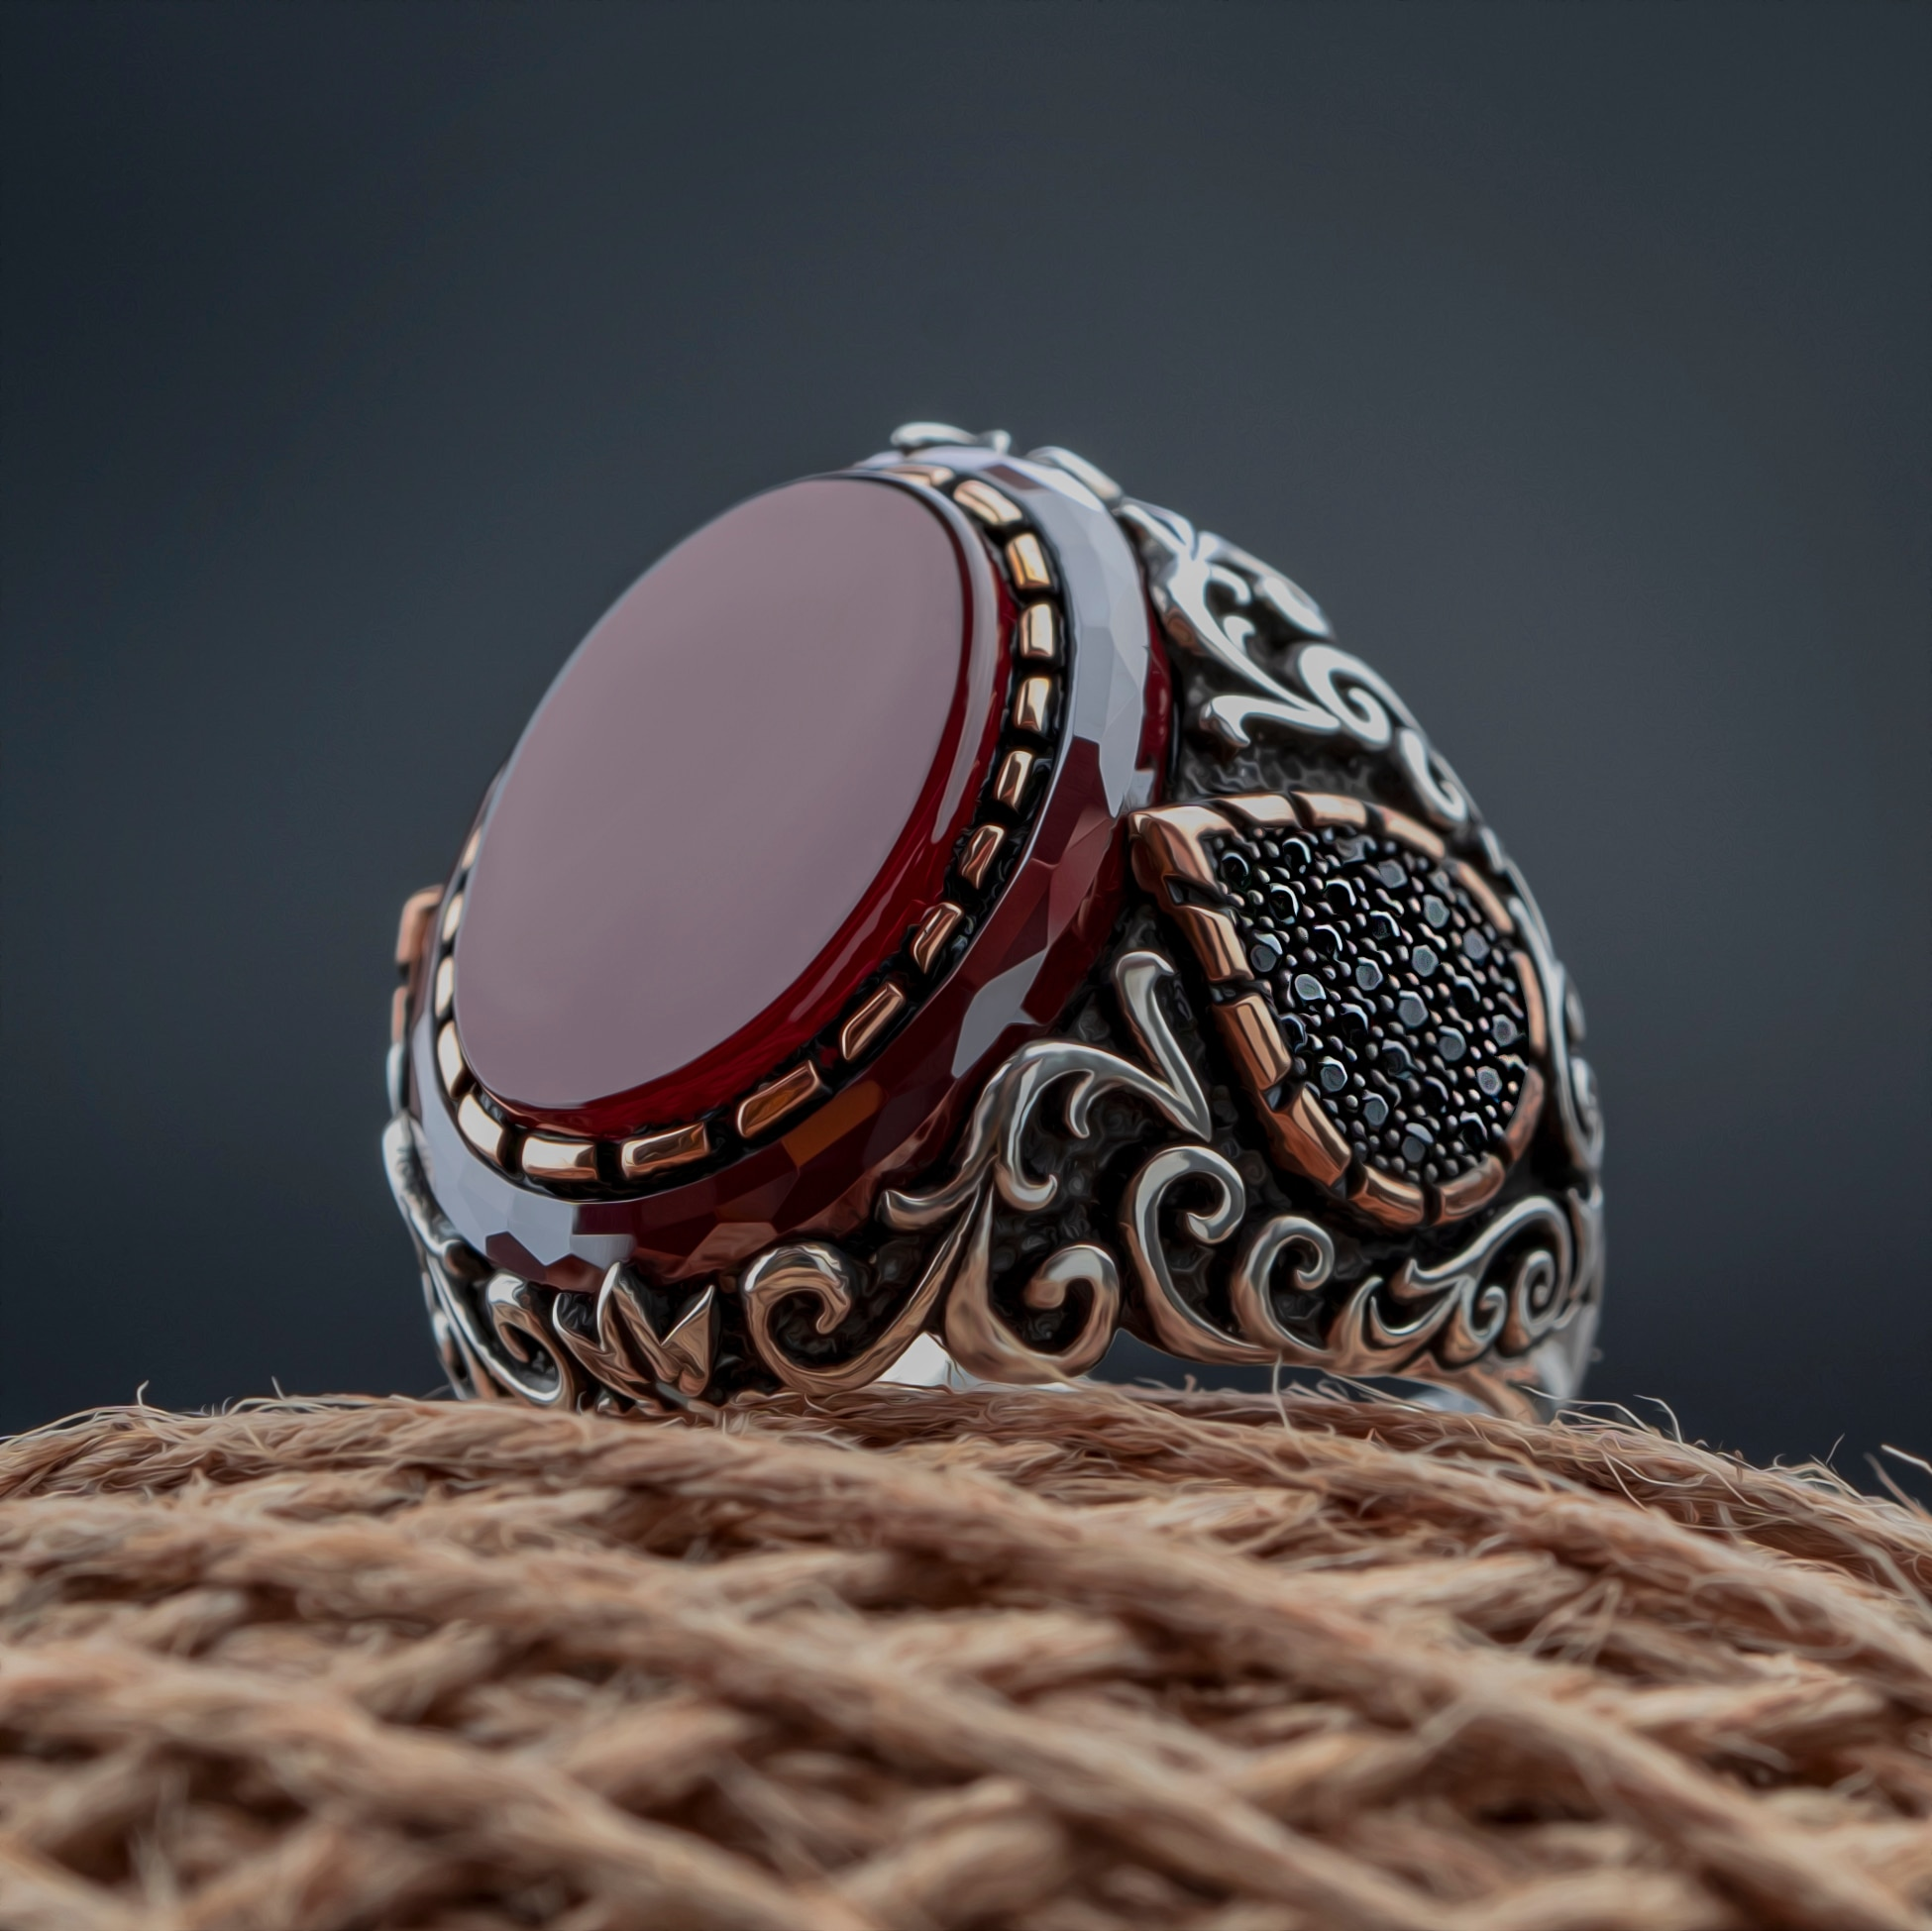 Guaranteed High-quality 925 Sterling Silver ONYX STONE Ring Jewelry Made in Turkey  Beautifully Crafted  for men with gift